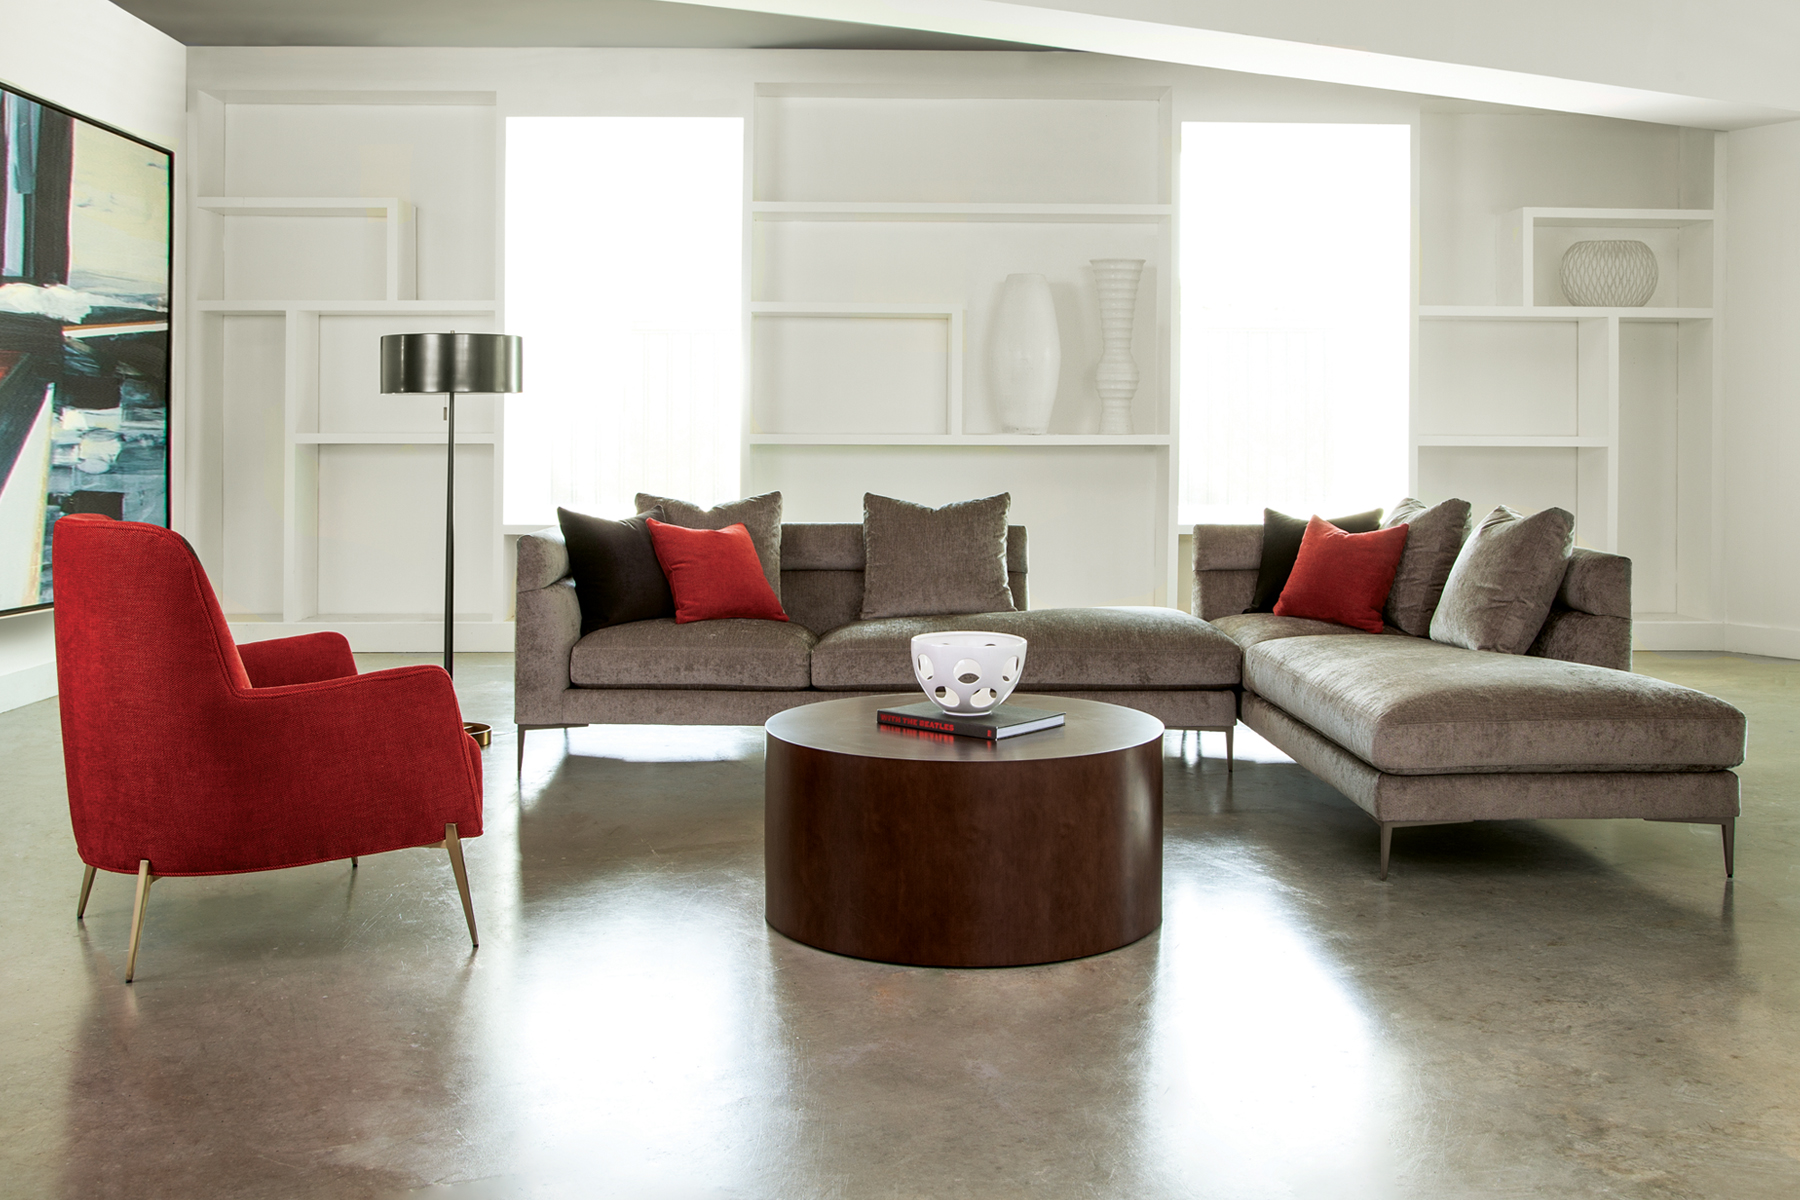 Slice sectional and Mia lounge chair from Thayer Coggin